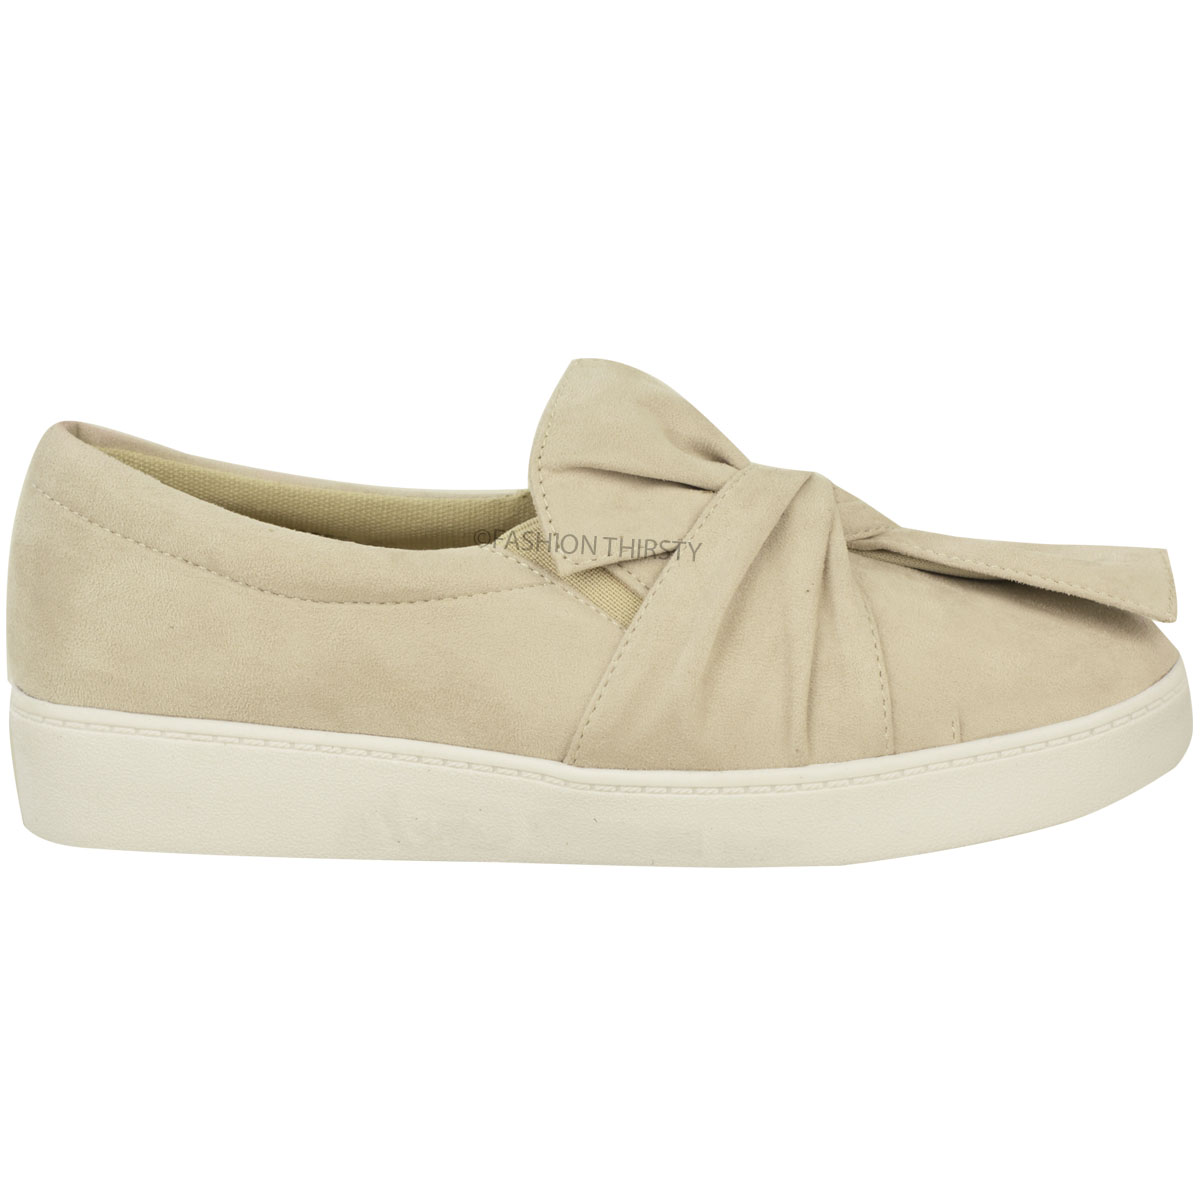 New Womens Ladies Trainers Faux Suede Slip On Flat Bow Sneakers Pumps Shoes Size